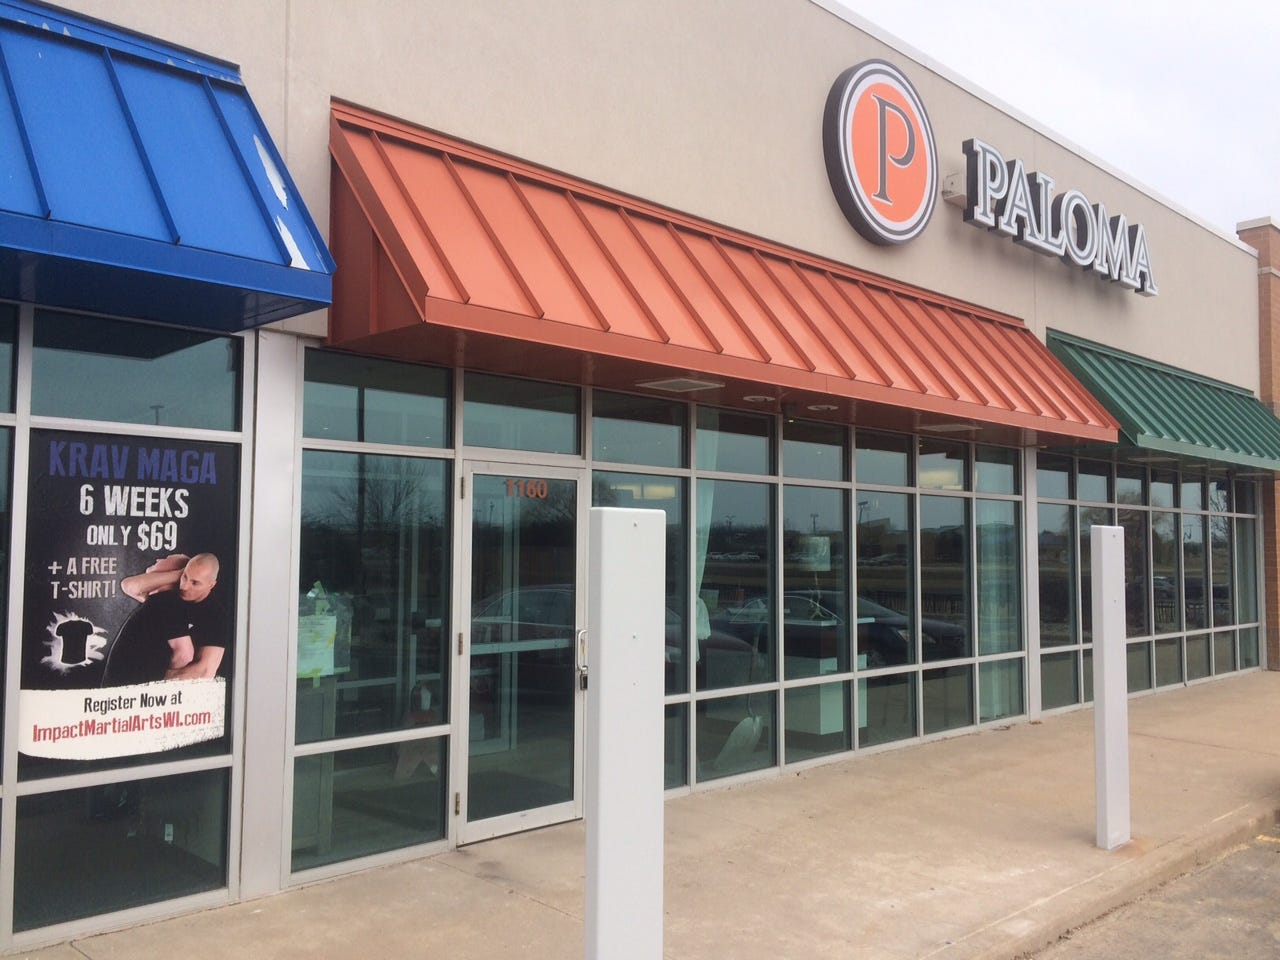 Streetwise: Paloma Modern Kitchen Revamps; Duluth Trading Co. Expands